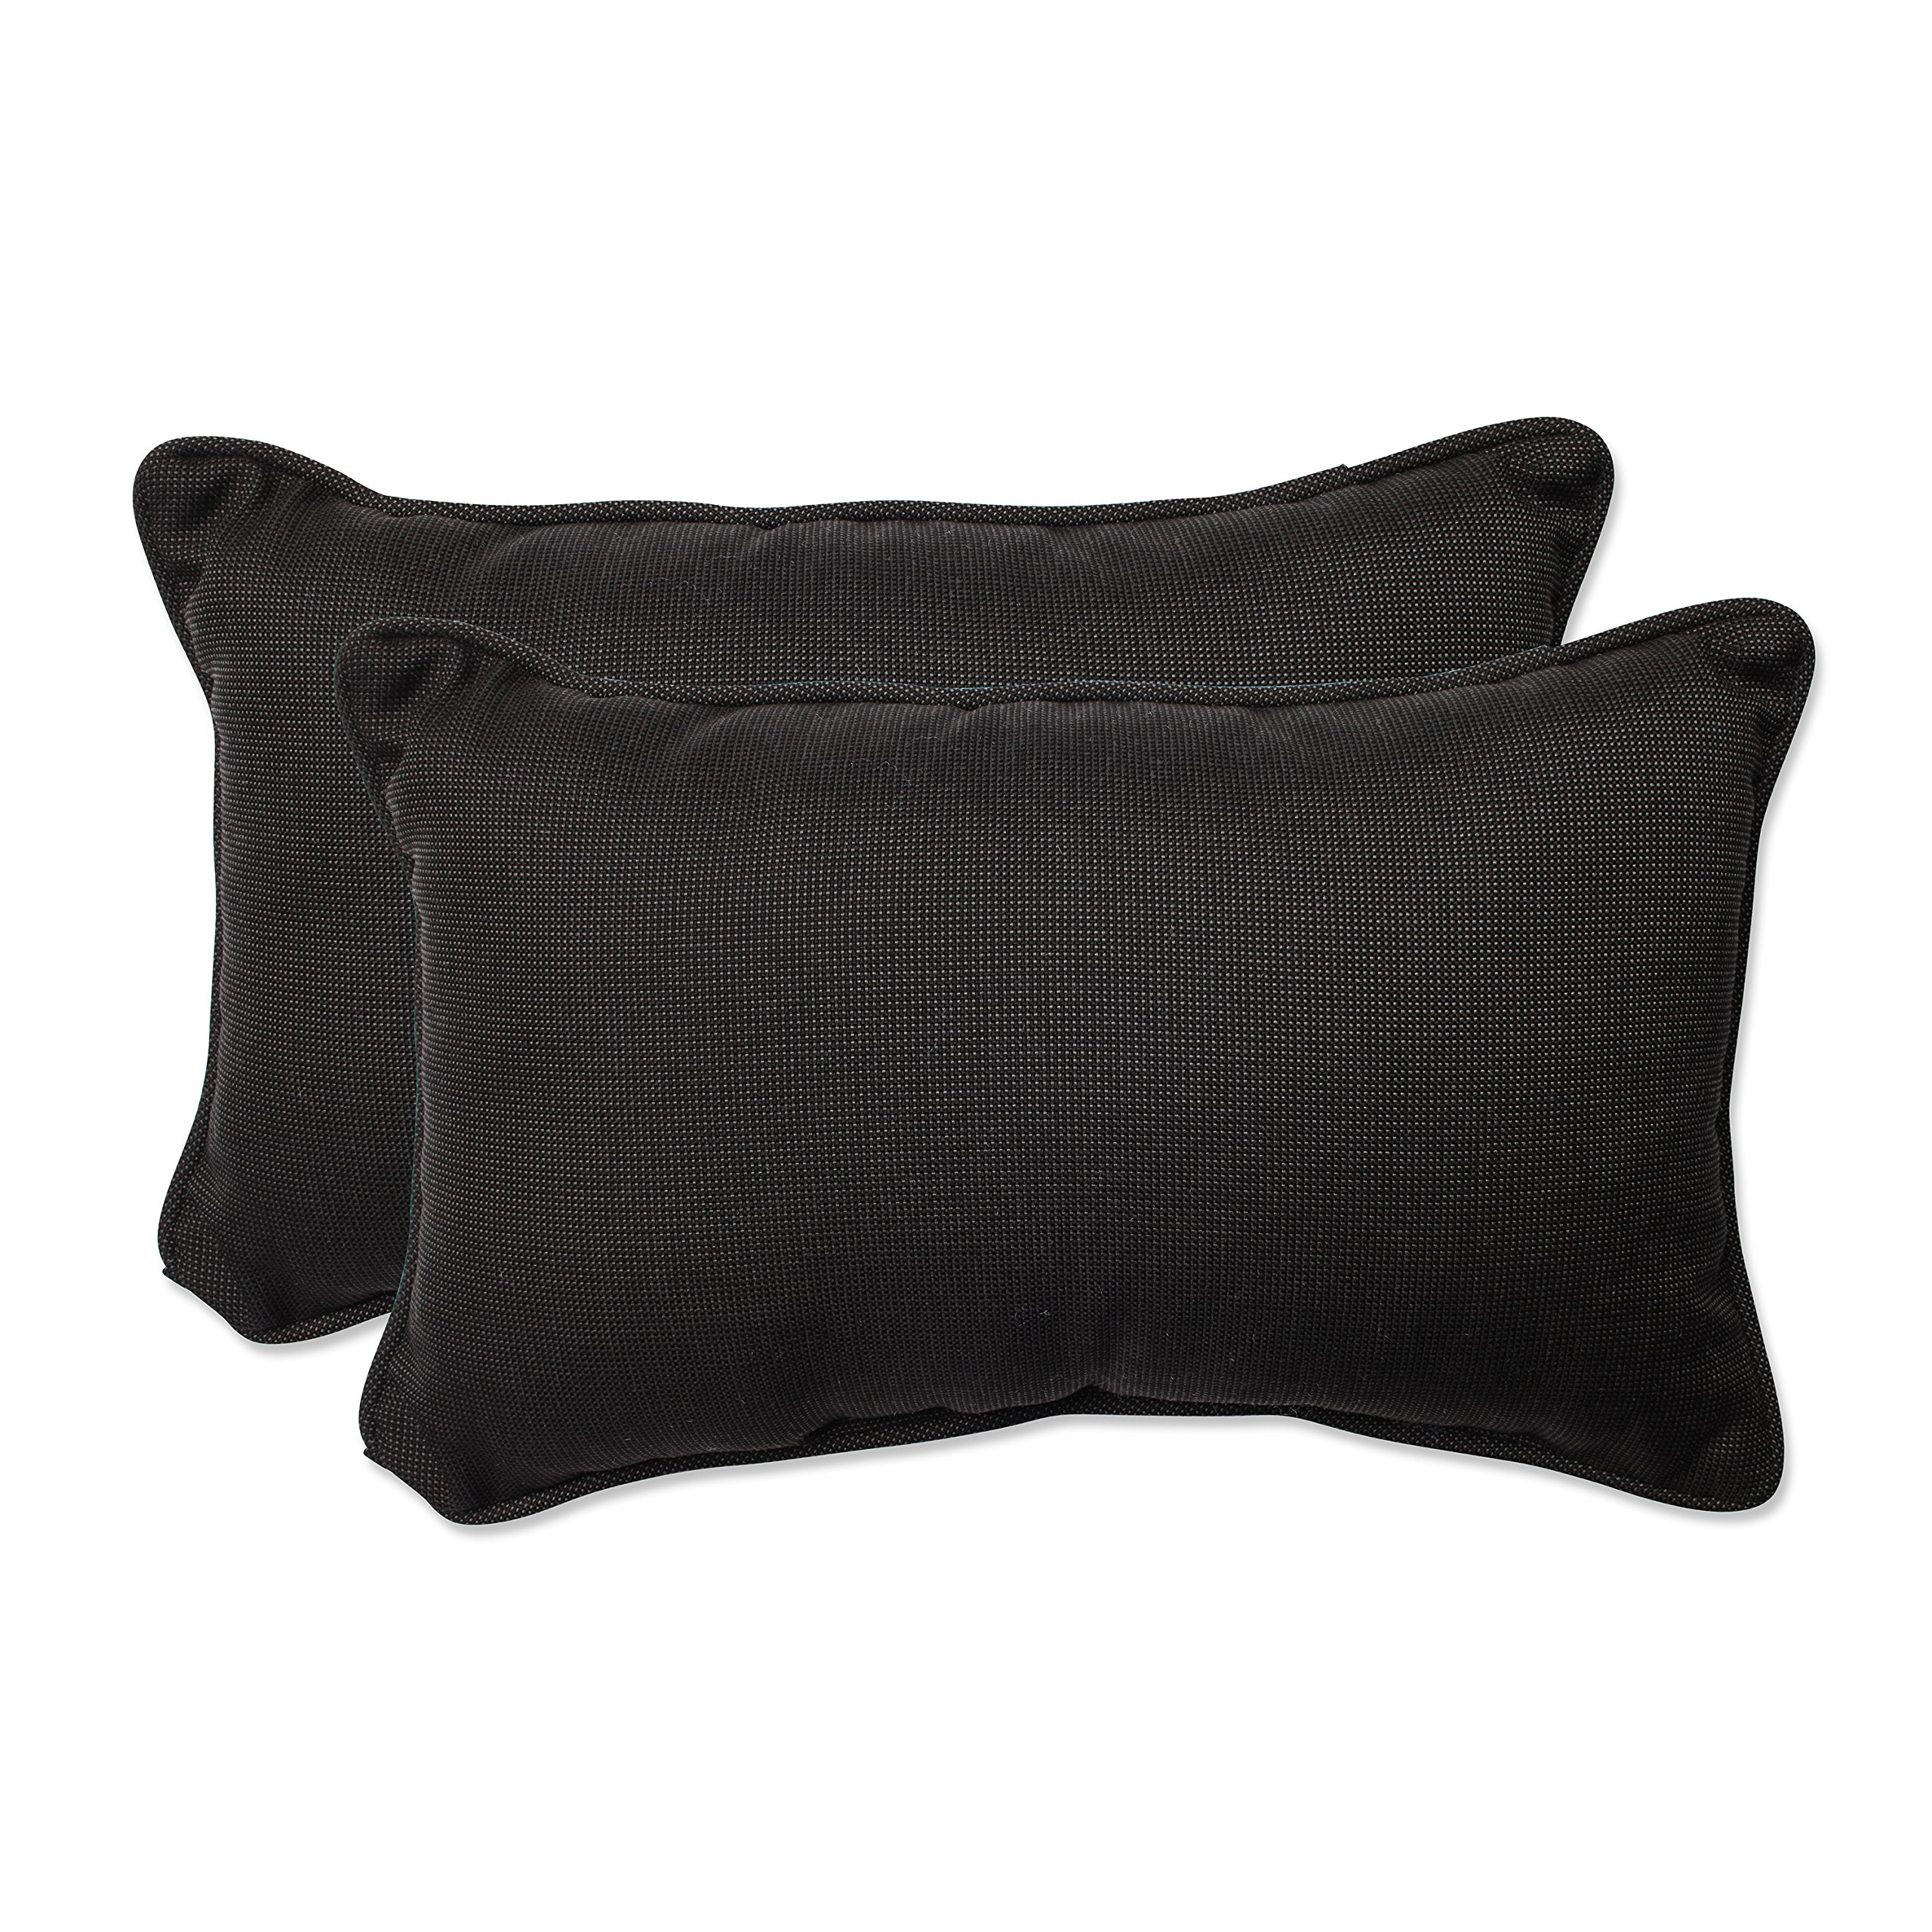 Pillow Perfect Outdoor/Indoor Tweed Rectangular Throw Pillow (Set of 2), Black by Pillow Perfect